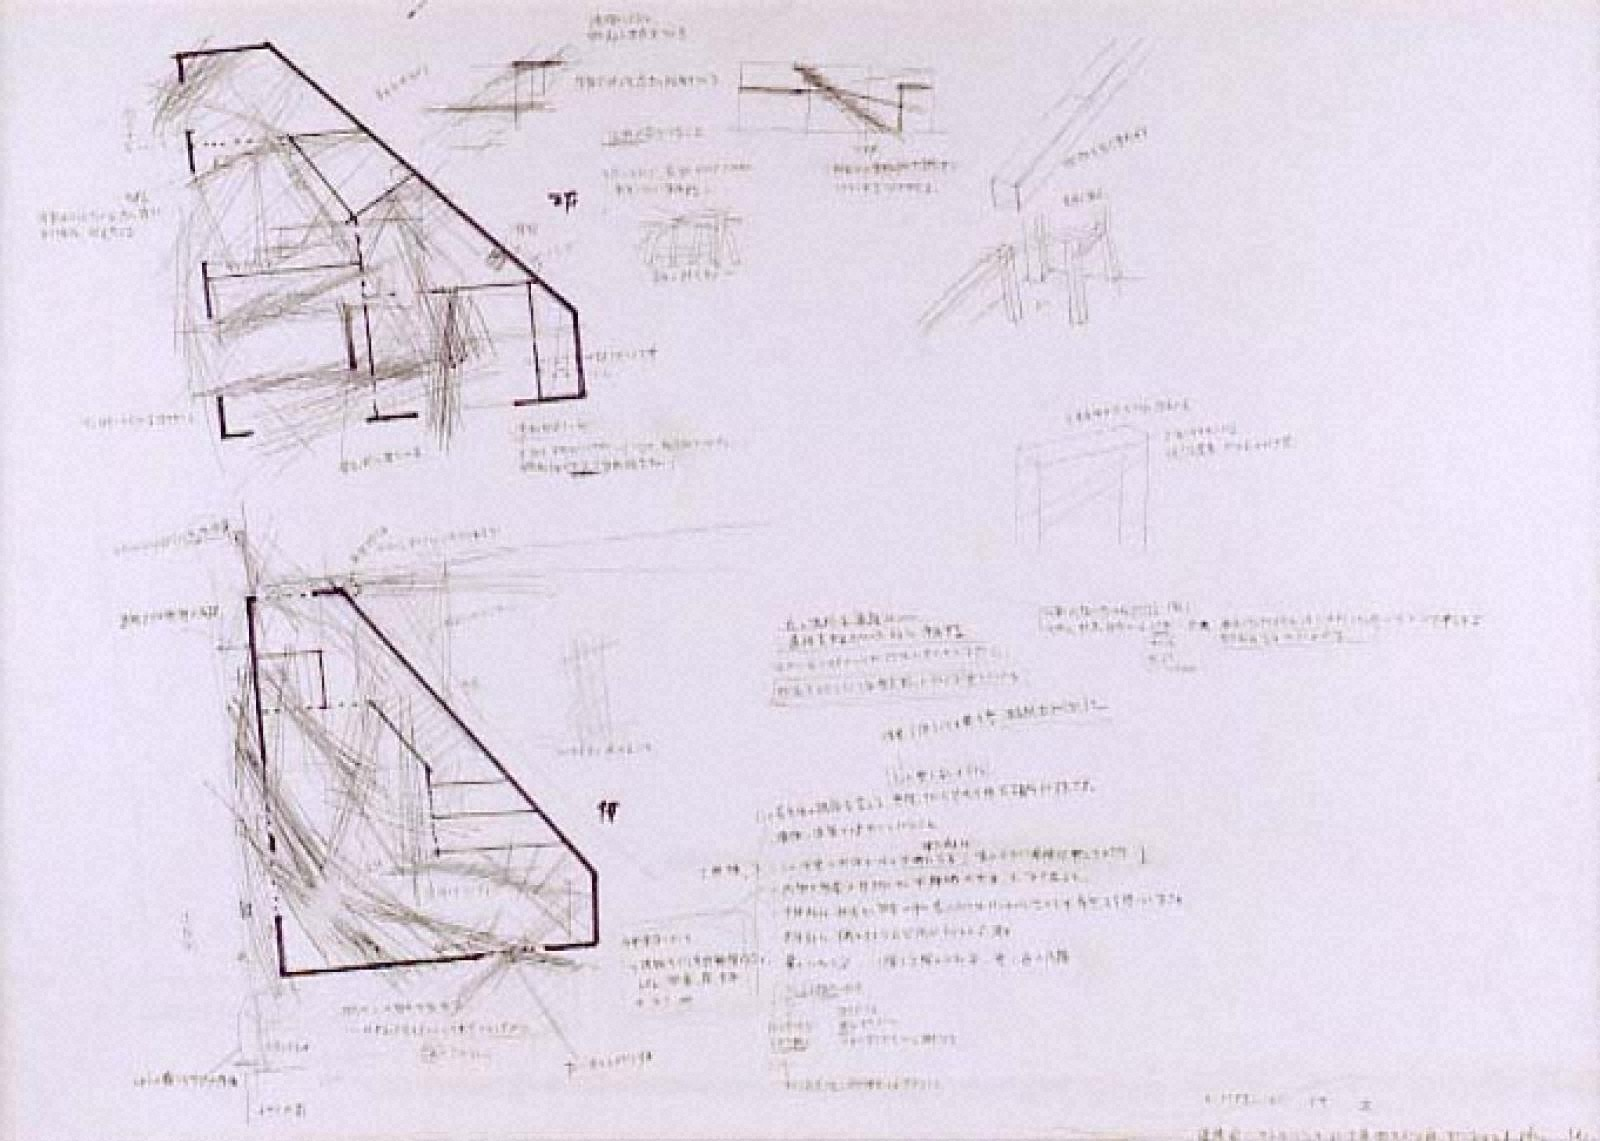 """PROJECT""""TETRA HOUSE N-3 W-26""""SAPPORO 1983 「Working Note 2」(ドローイング)"""